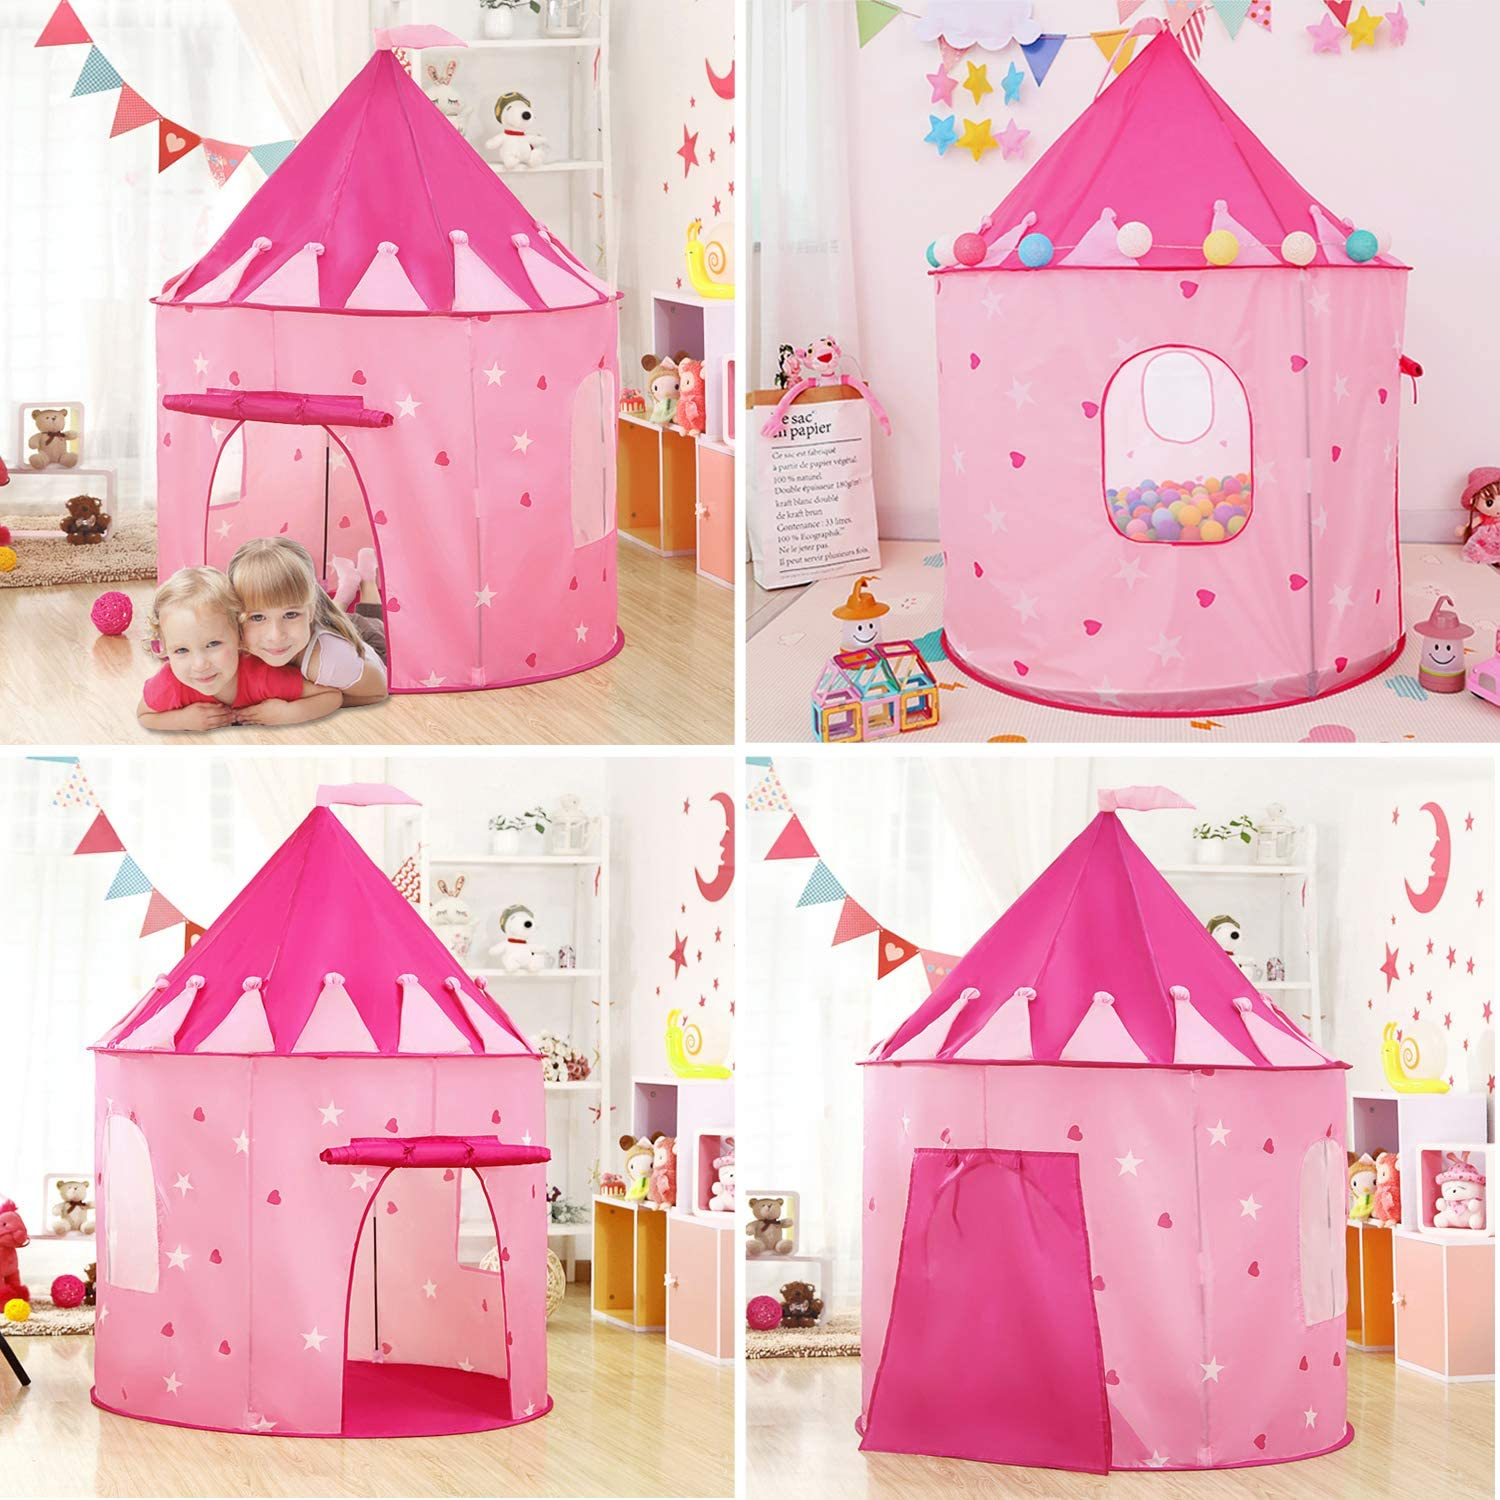 VOJUEAR 3pc Boys /& Girls Play Toy Tents and Tunnels,Princess Fairy Tale Castle Play Tent Crawl Tunnel /& Ball Pit with Basketball Hoop for Toddlers,Playhouse as Portable Storage Bag Pink /…